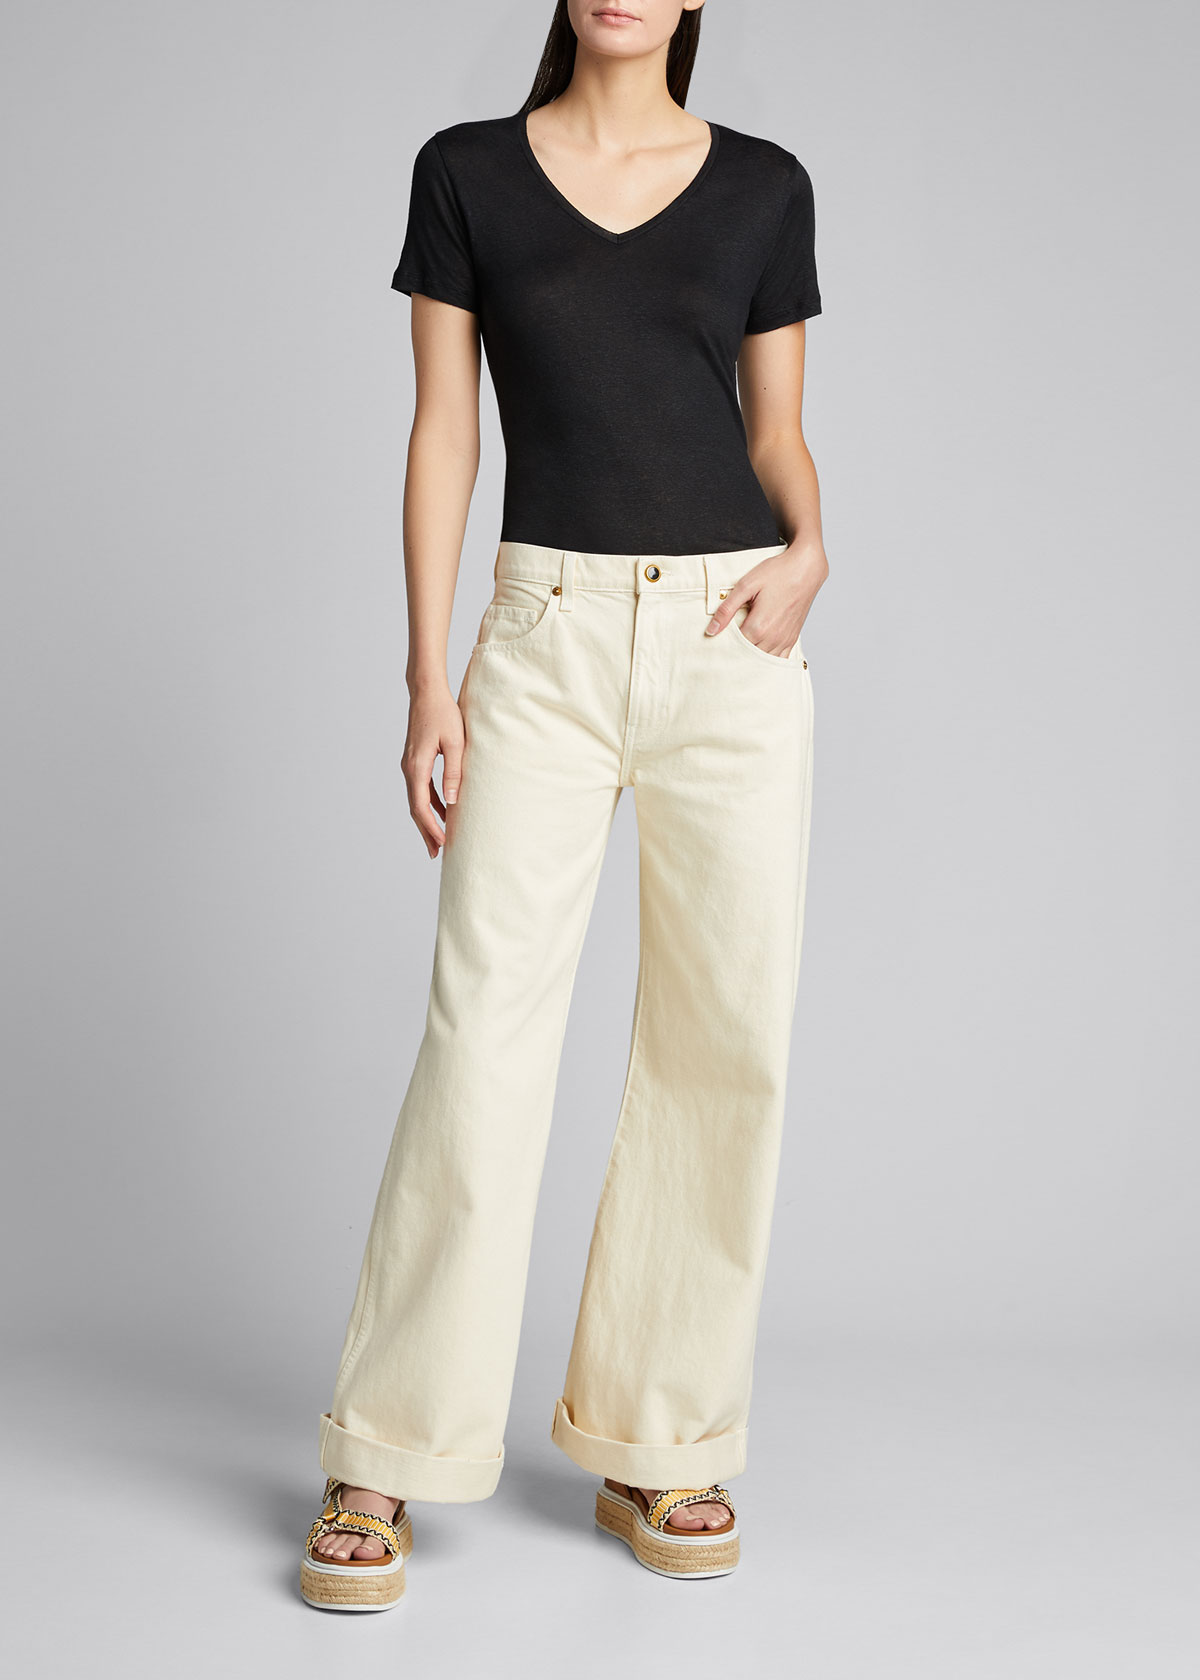 Majestic Linens STRETCH-LINEN SEMI-RELAXED V-NECK TEE